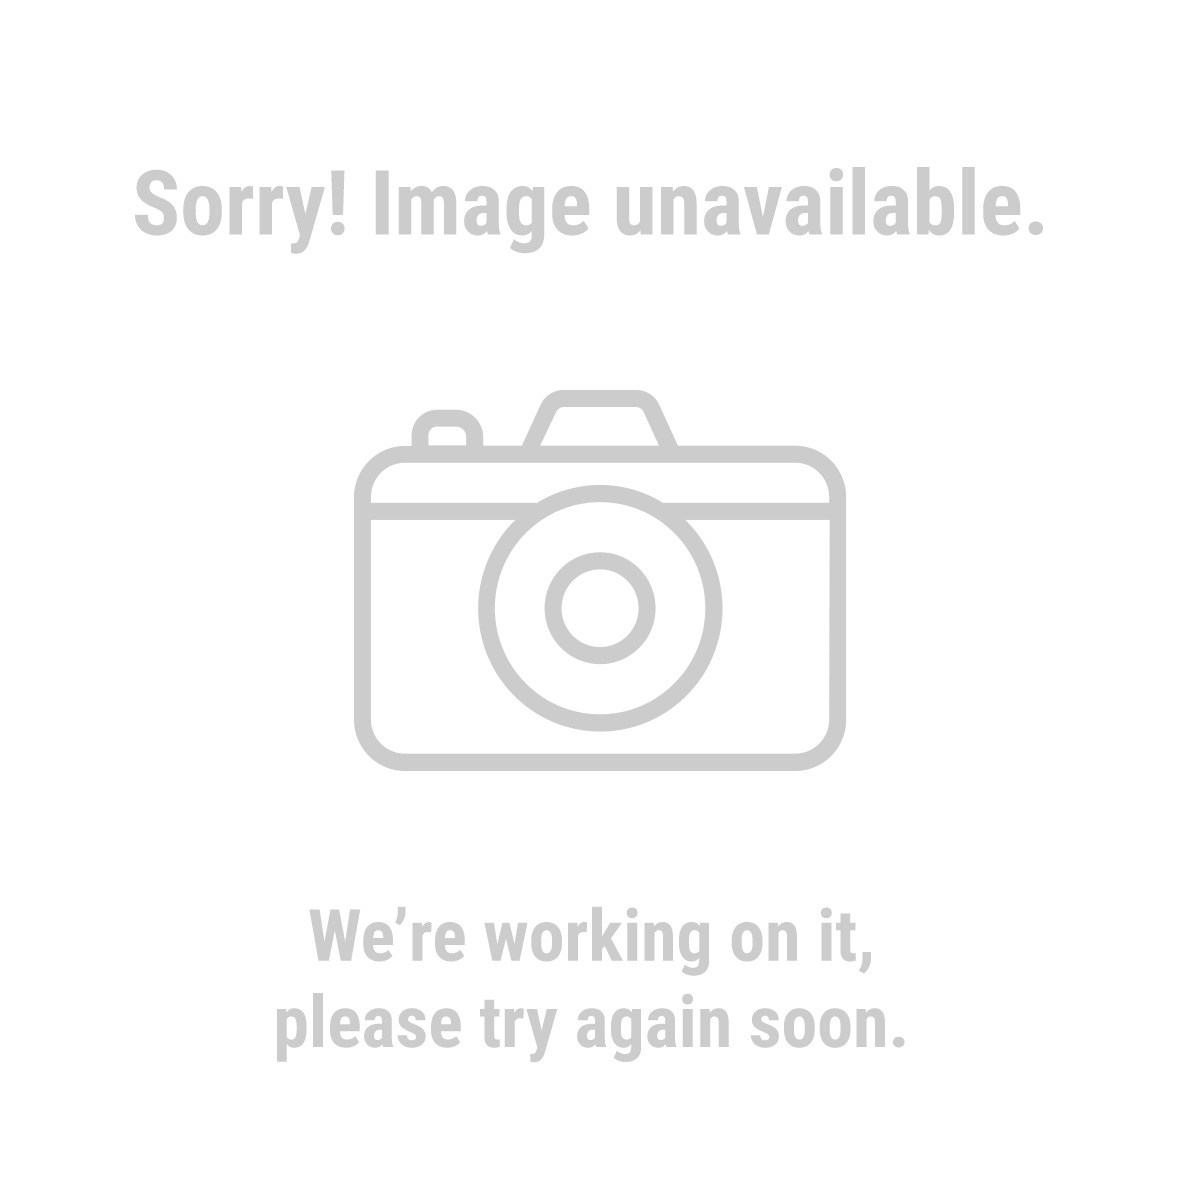 Bunker Hill Security® 62367 Wireless Color Security Camera with Night Vision